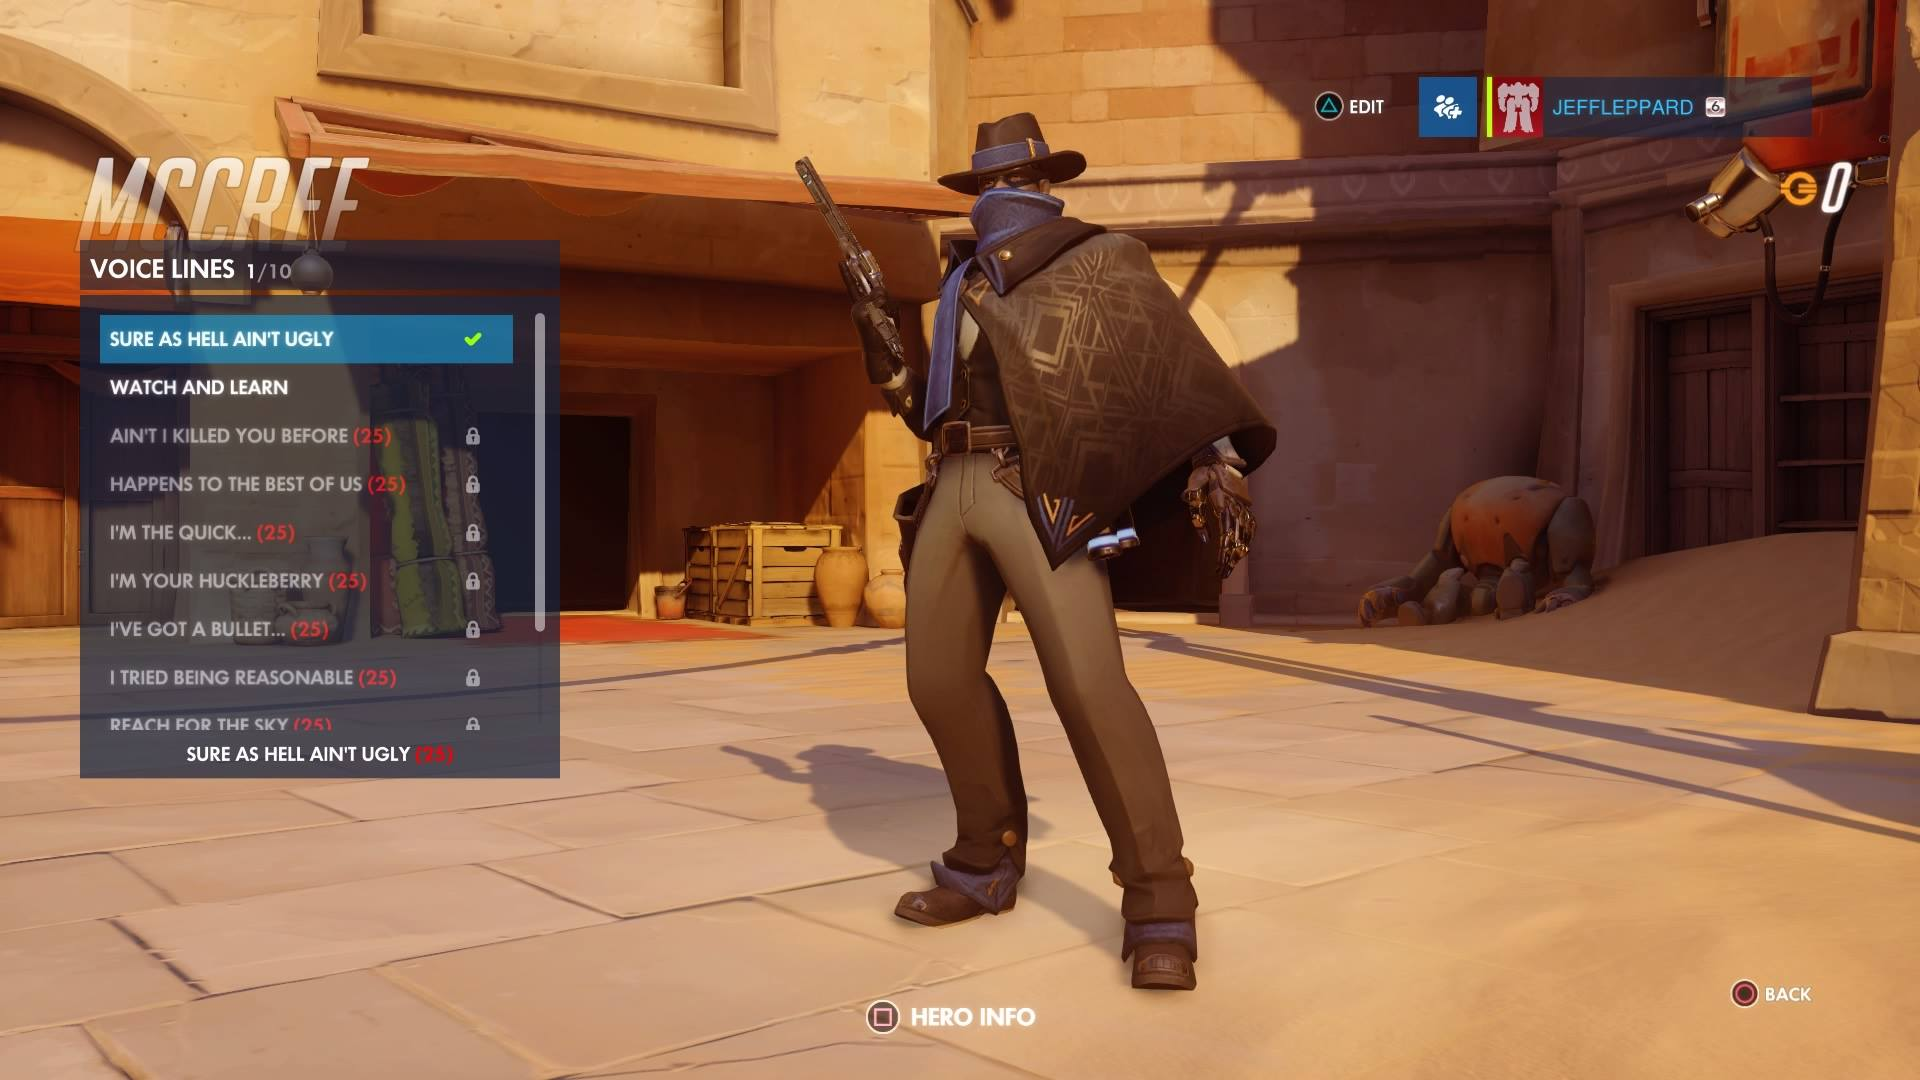 Overwatch: how to level up and get loot - VG247